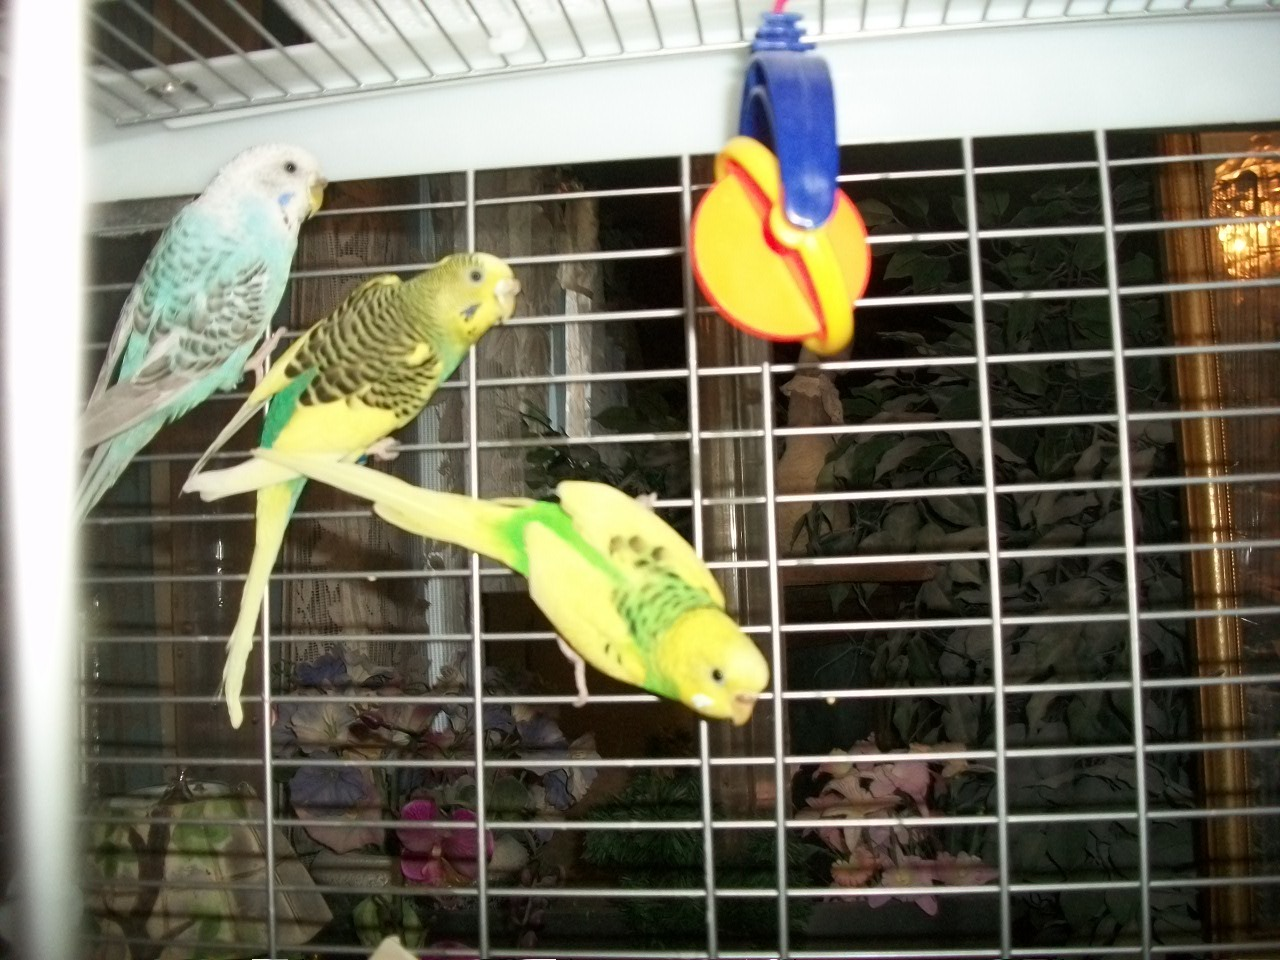 Re: Budgie Lost His Mate - Giving Him To Shelter?